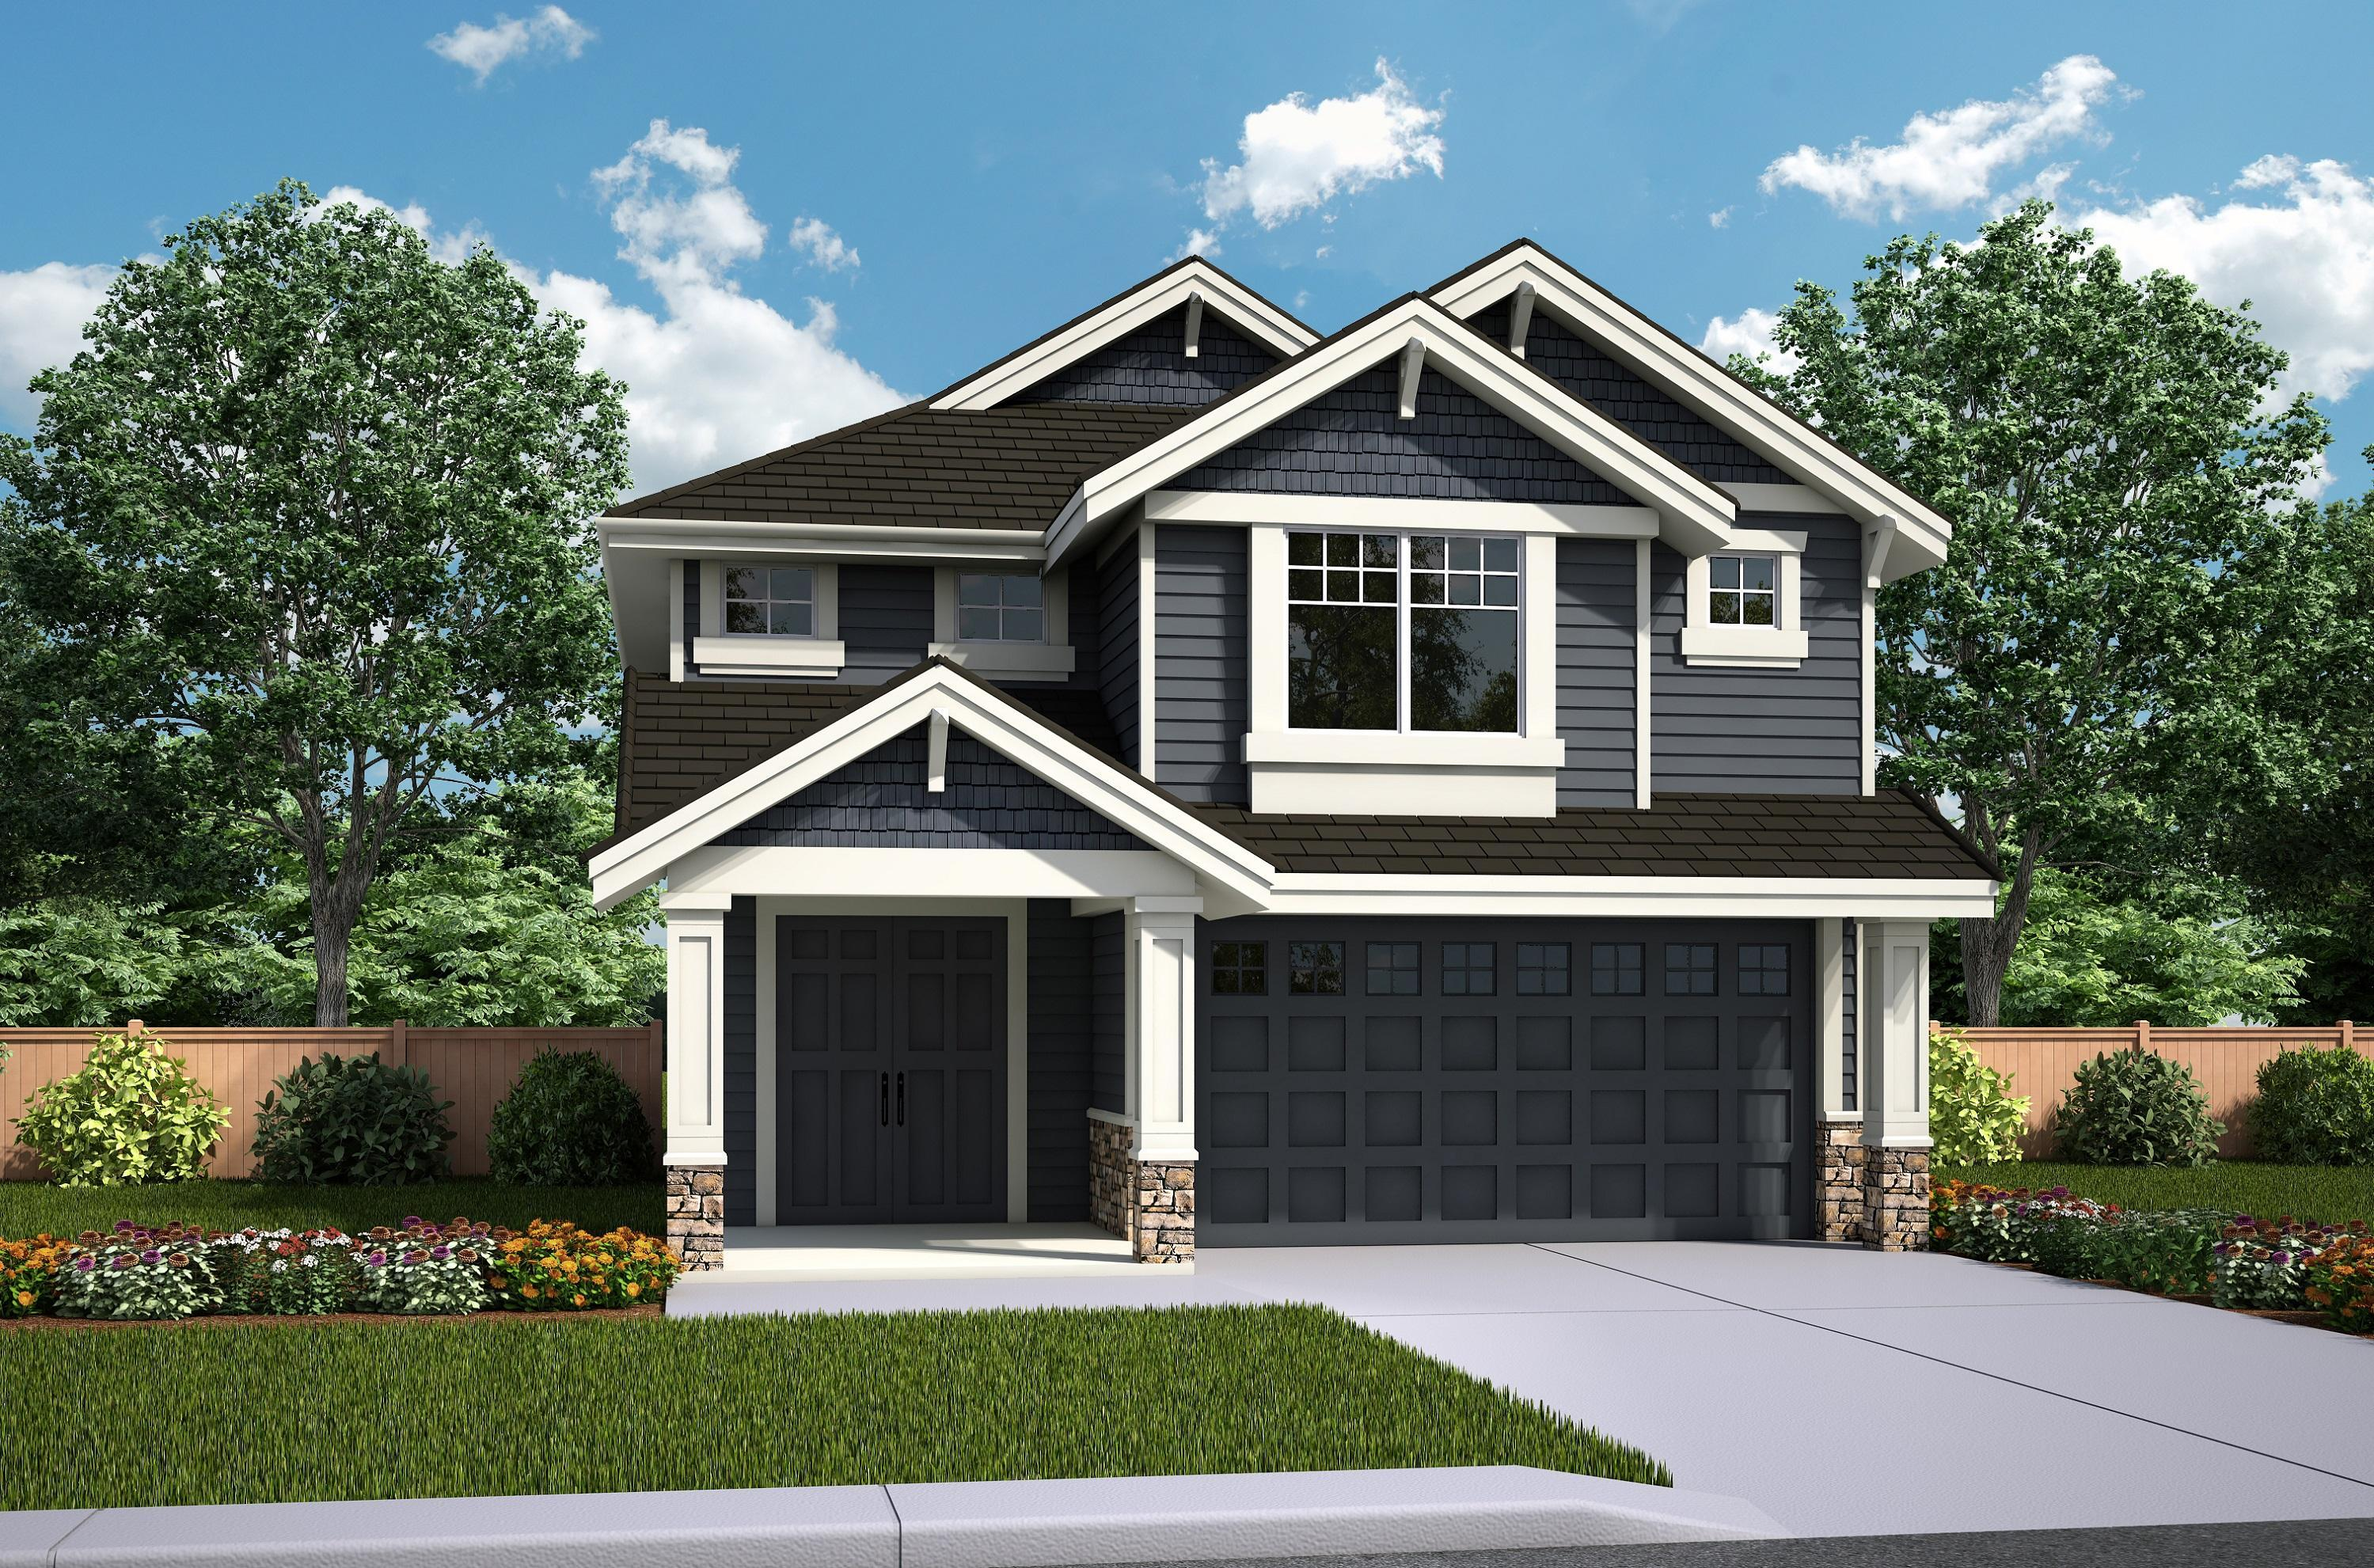 Single Family for Sale at Canyon Terrace - Ct 3132a Se 192nd St &Amp; 124th Ave Se Renton, Washington 98058 United States